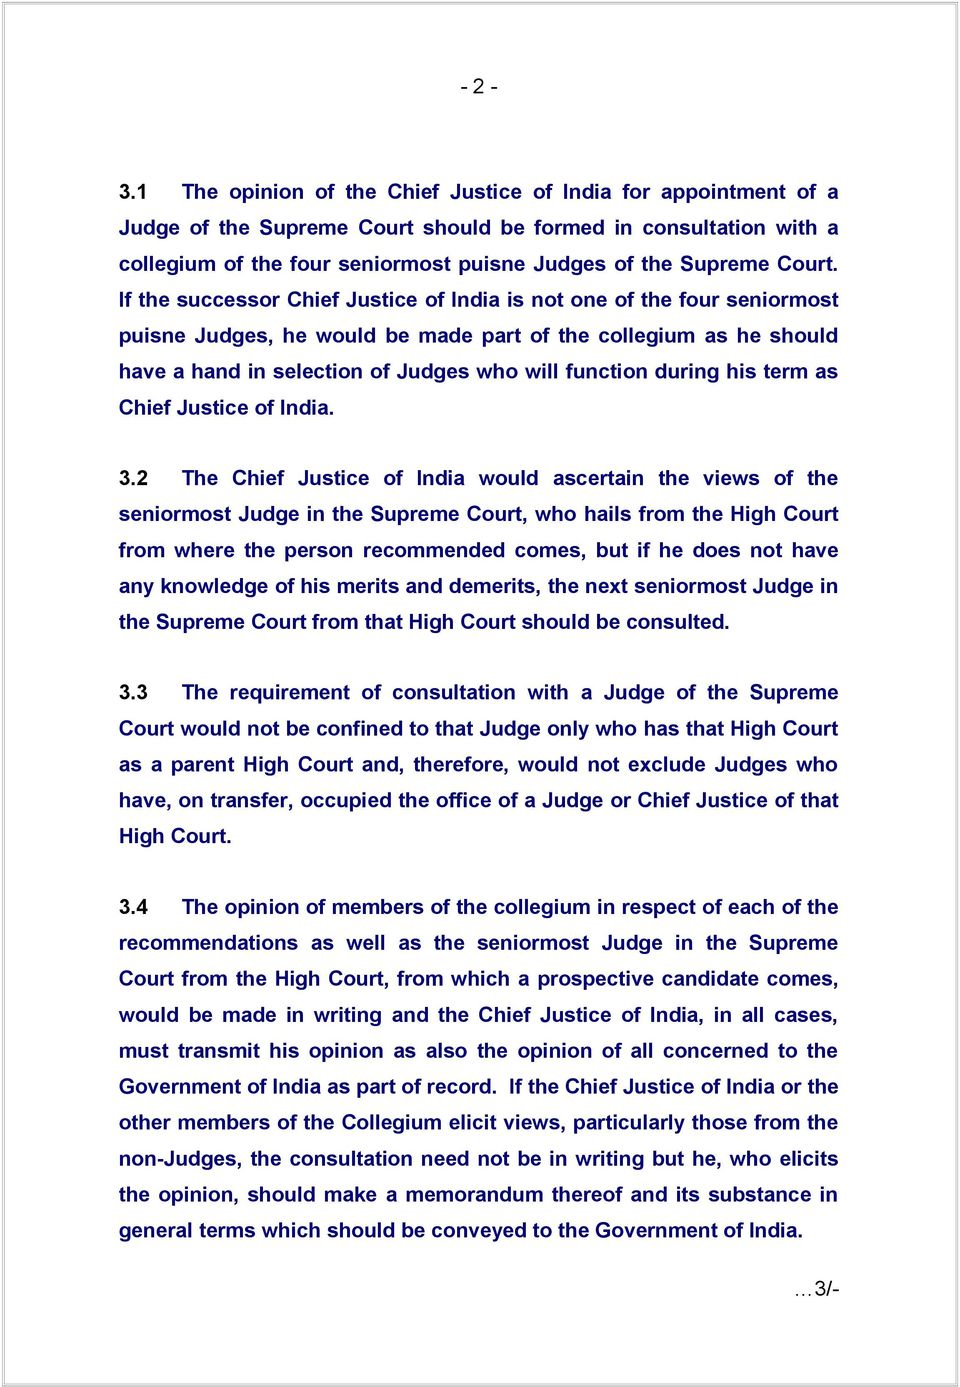 If the successor Chief Justice of India is not one of the four seniormost puisne Judges, he would be made part of the collegium as he should have a hand in selection of Judges who will function